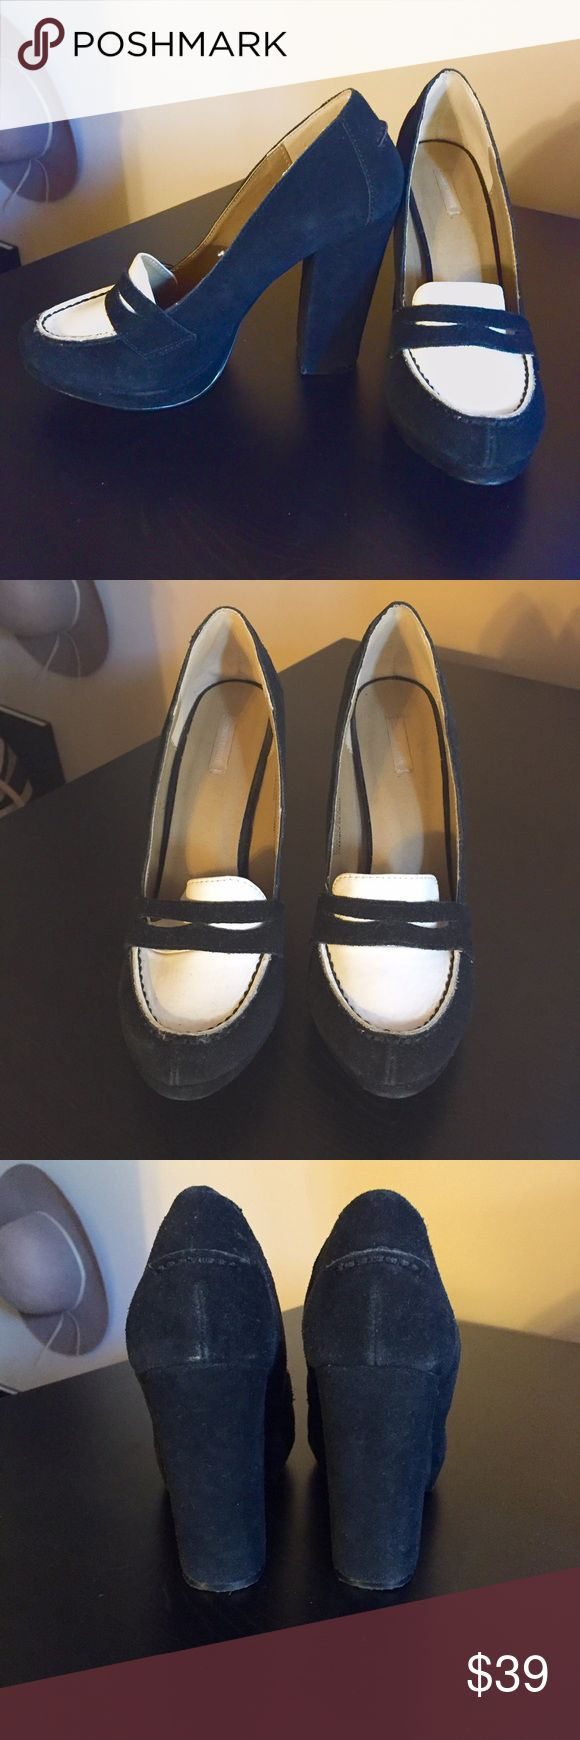 """1 DAY SALECooperative High Heel Loafers Black and white high heeled loafers with faux suede and patent leather. Thick sturdy heel: 4"""" Only worn once. No trades, reasonable offers will be considered. Urban Outfitters Shoes Heels"""